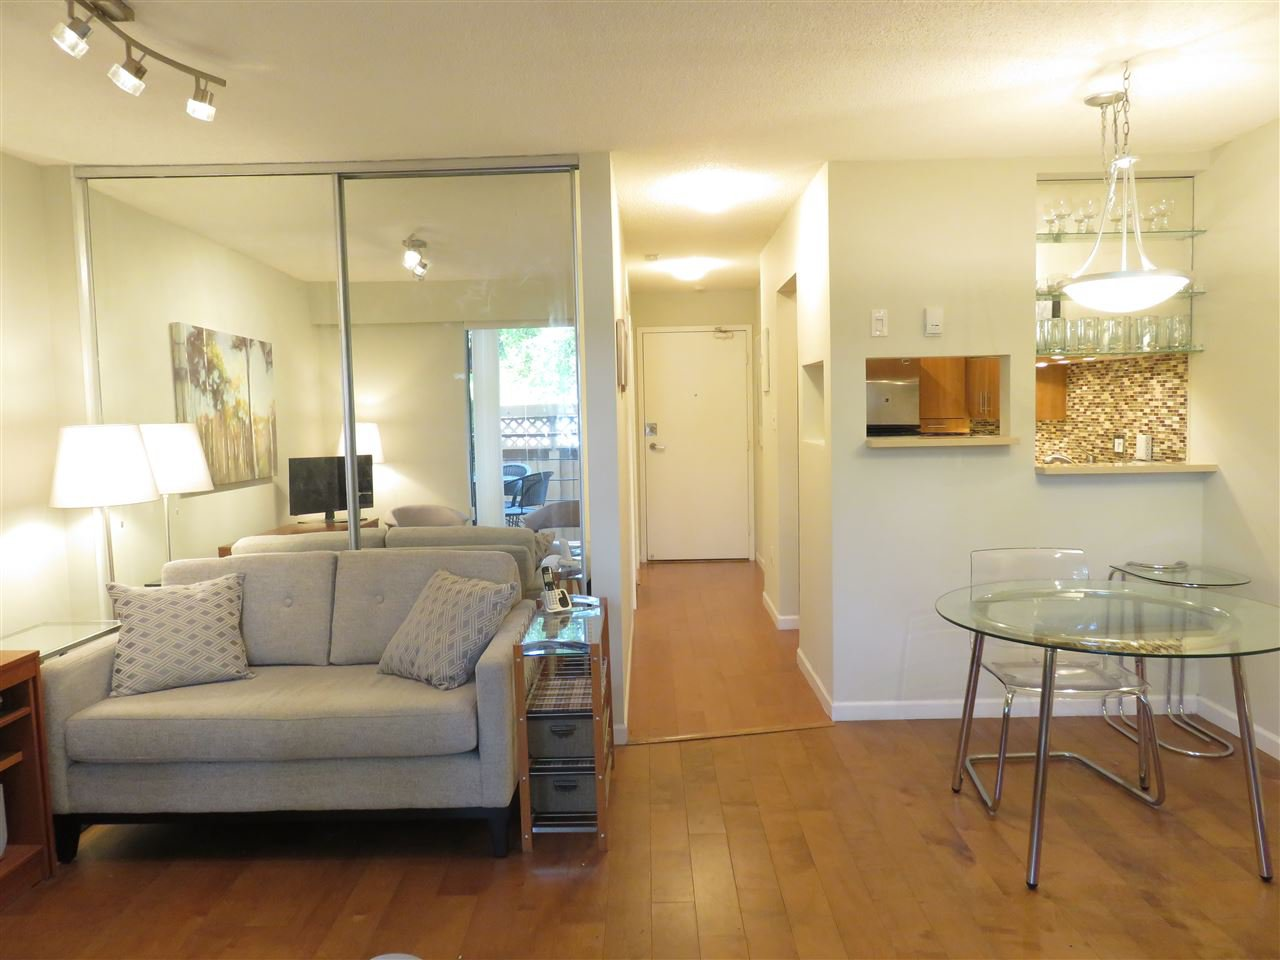 """Photo 5: Photos: 101 1930 W 3RD Avenue in Vancouver: Kitsilano Condo for sale in """"WESTVIEW"""" (Vancouver West)  : MLS®# R2169188"""